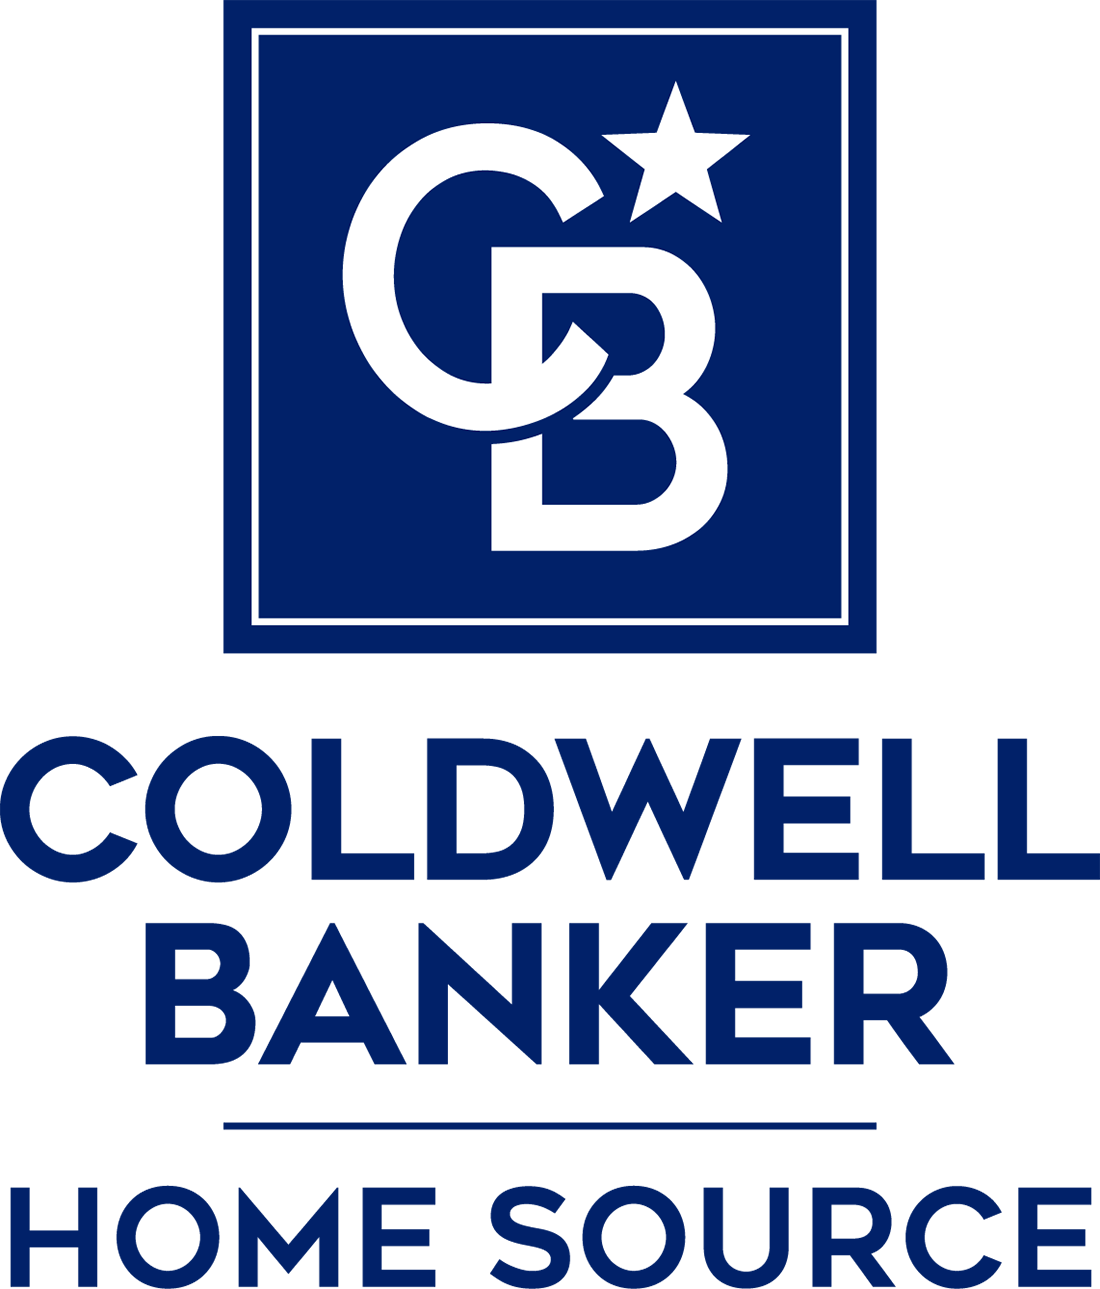 Jeffrey Longshore Jr. - Coldwell Banker Home Source Logo